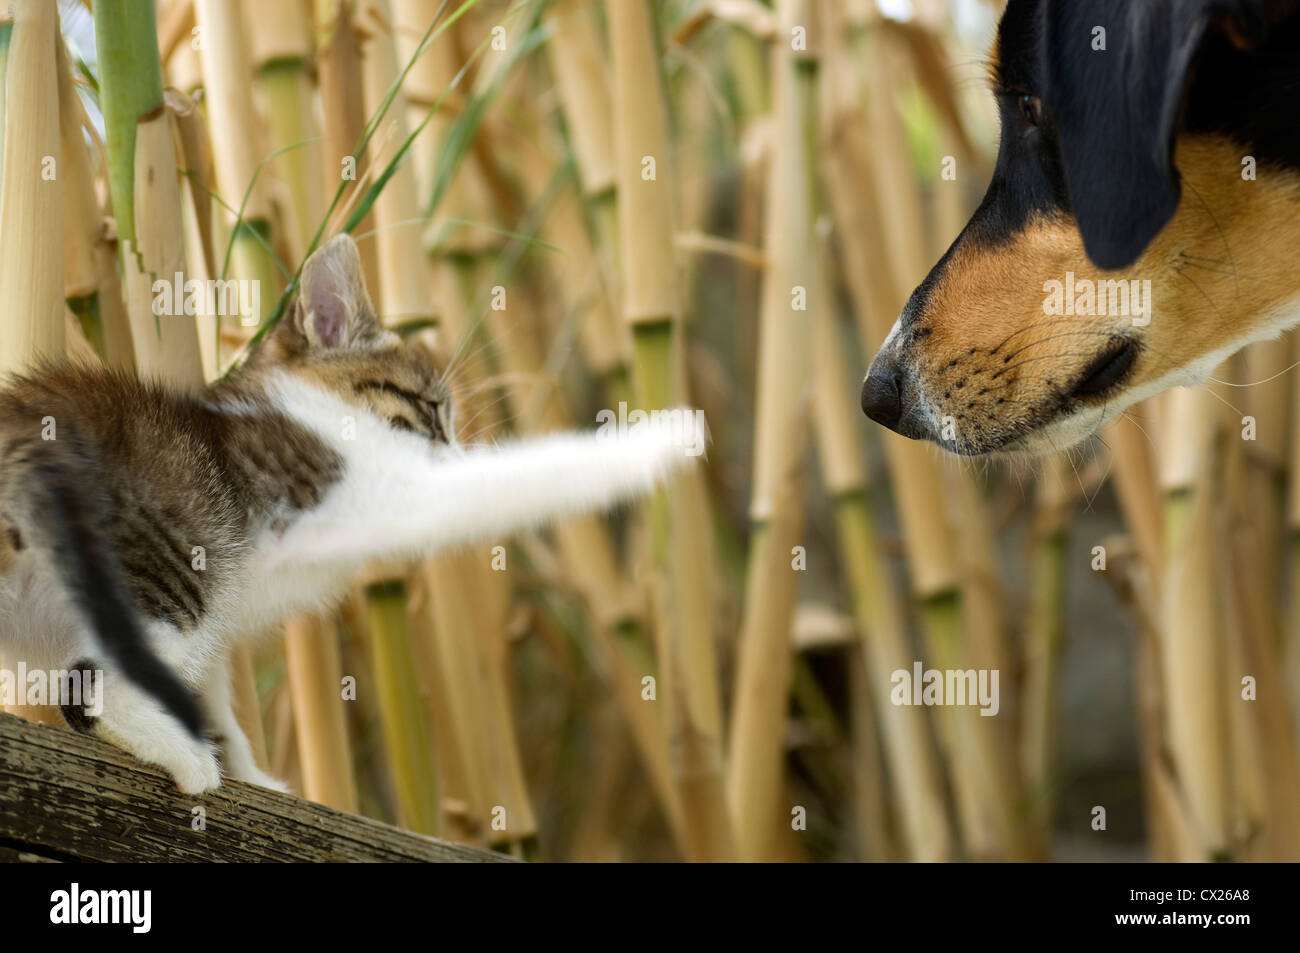 Kitten meets dog - Stock Image